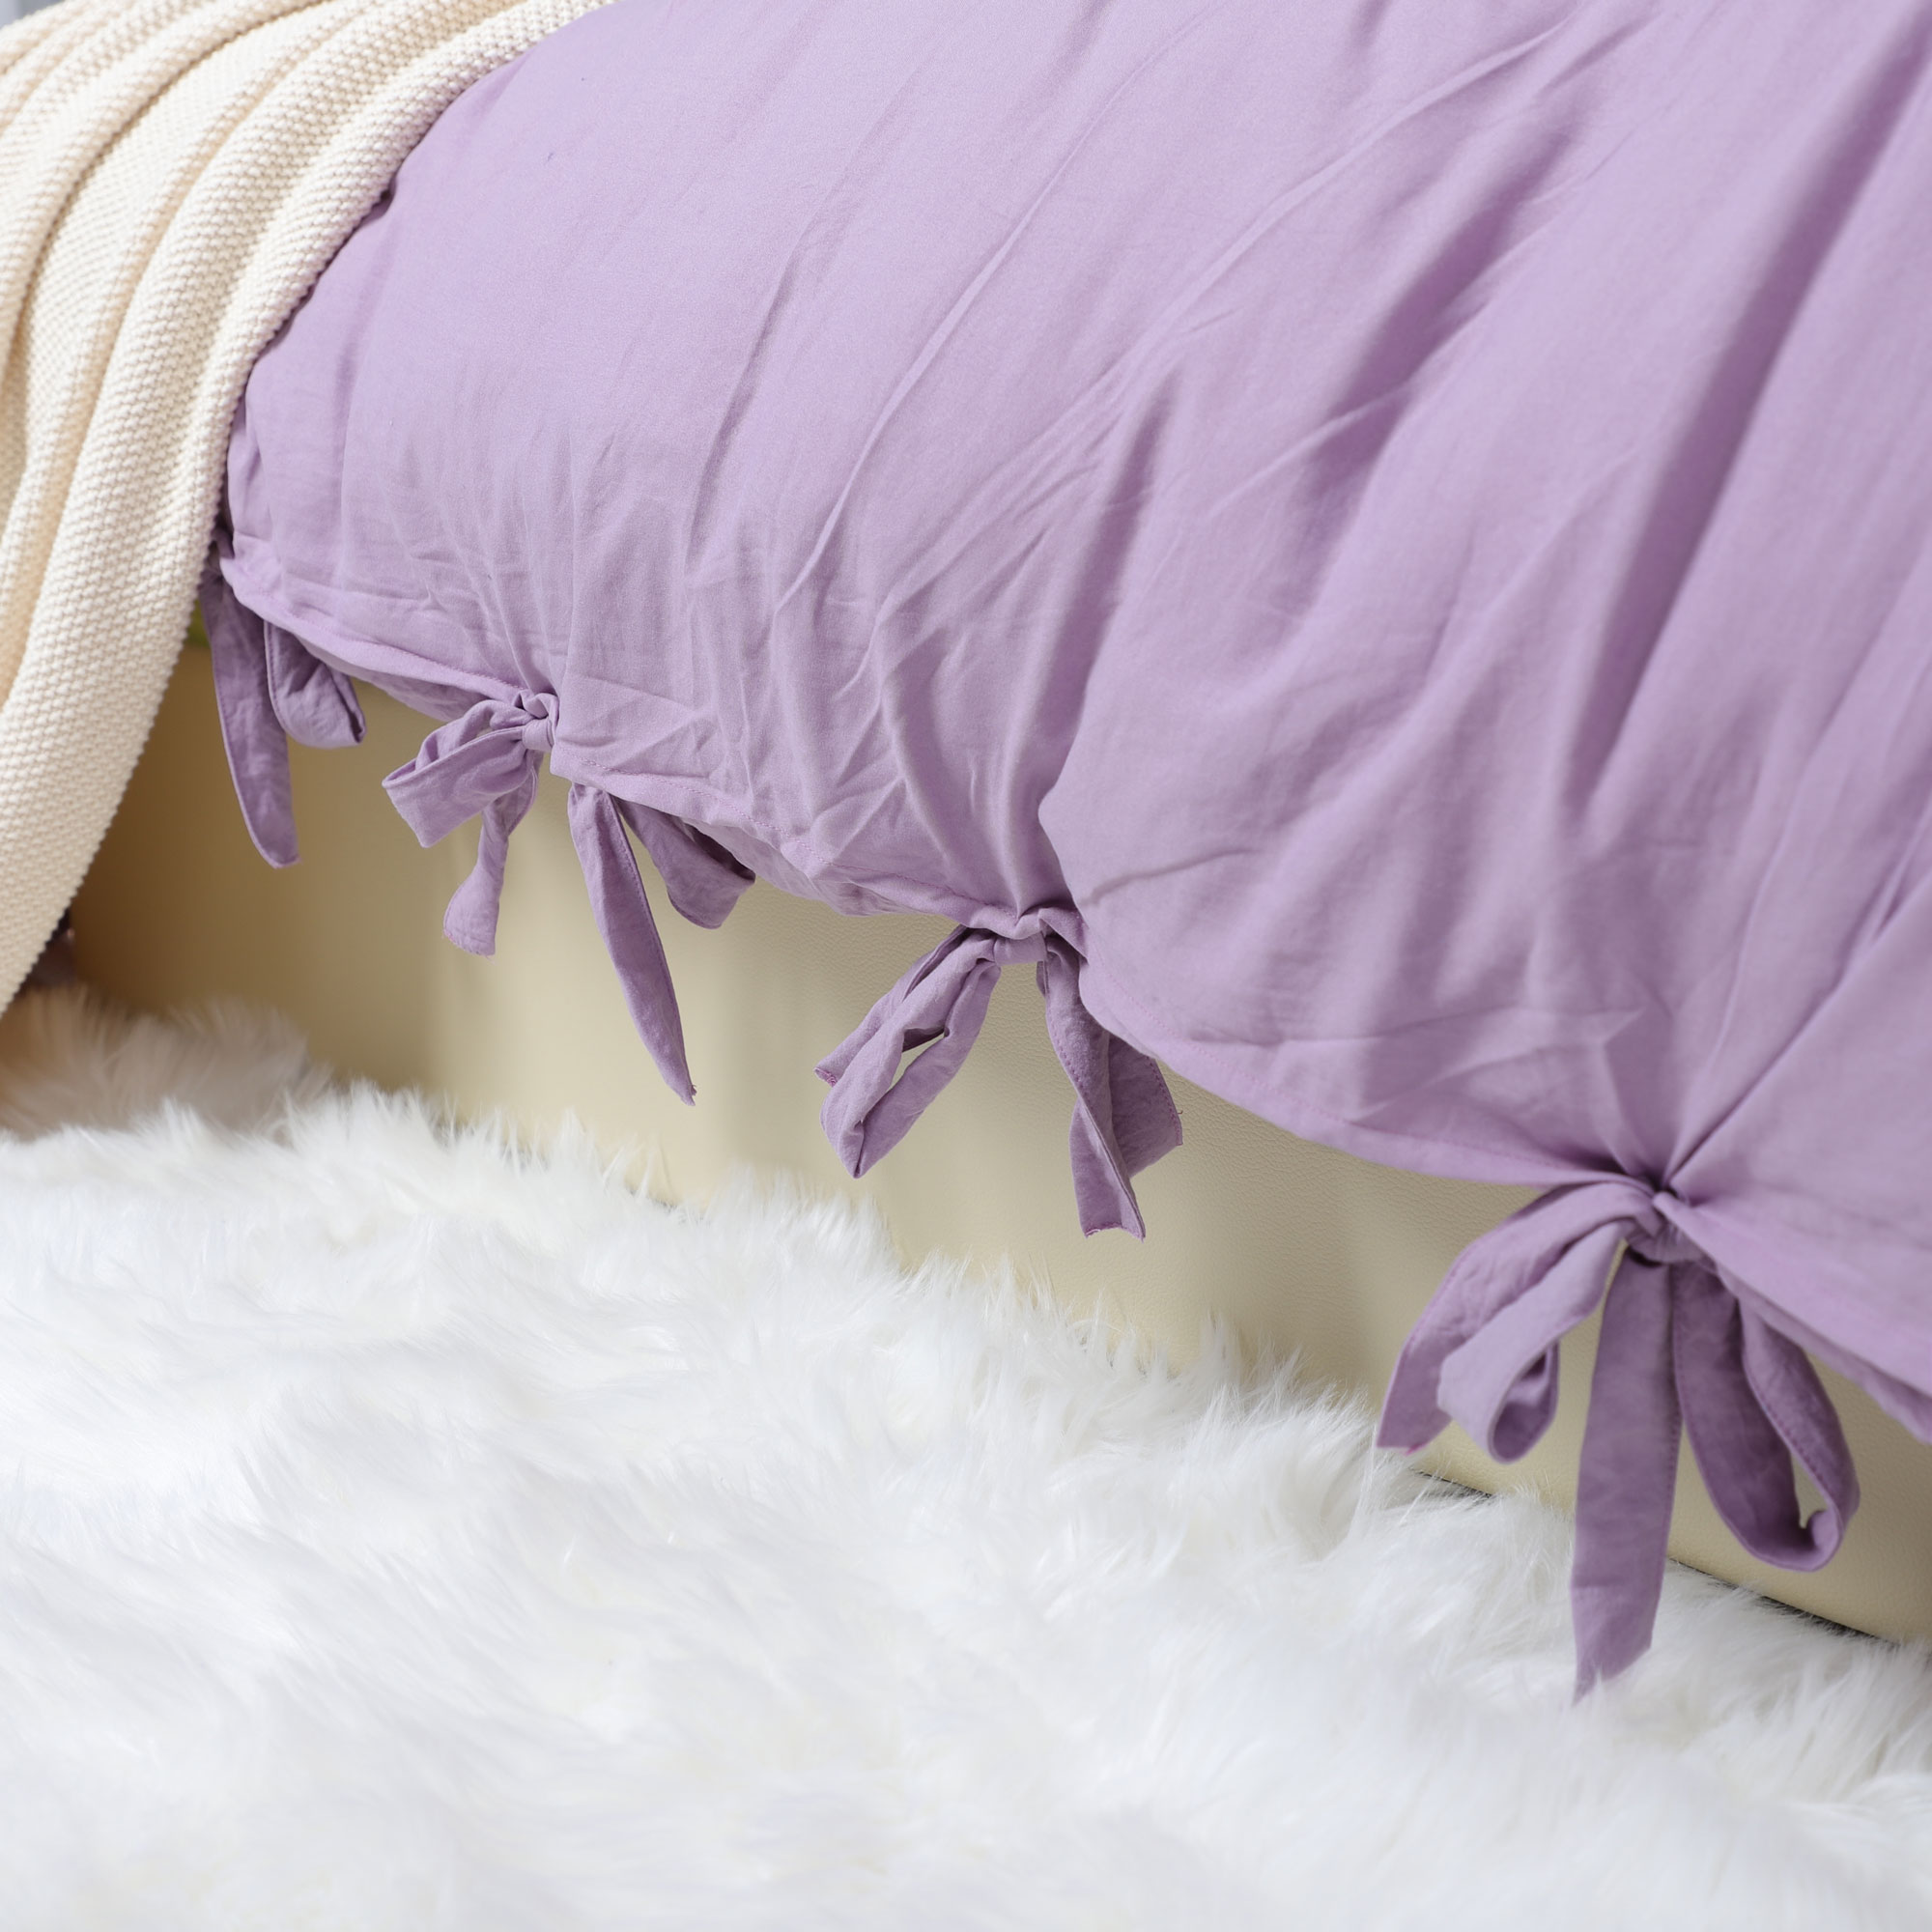 Duvet Cover And Shams Egyptian Comfort 1800 Count Bedding Set Light Purple Queen - image 1 of 8